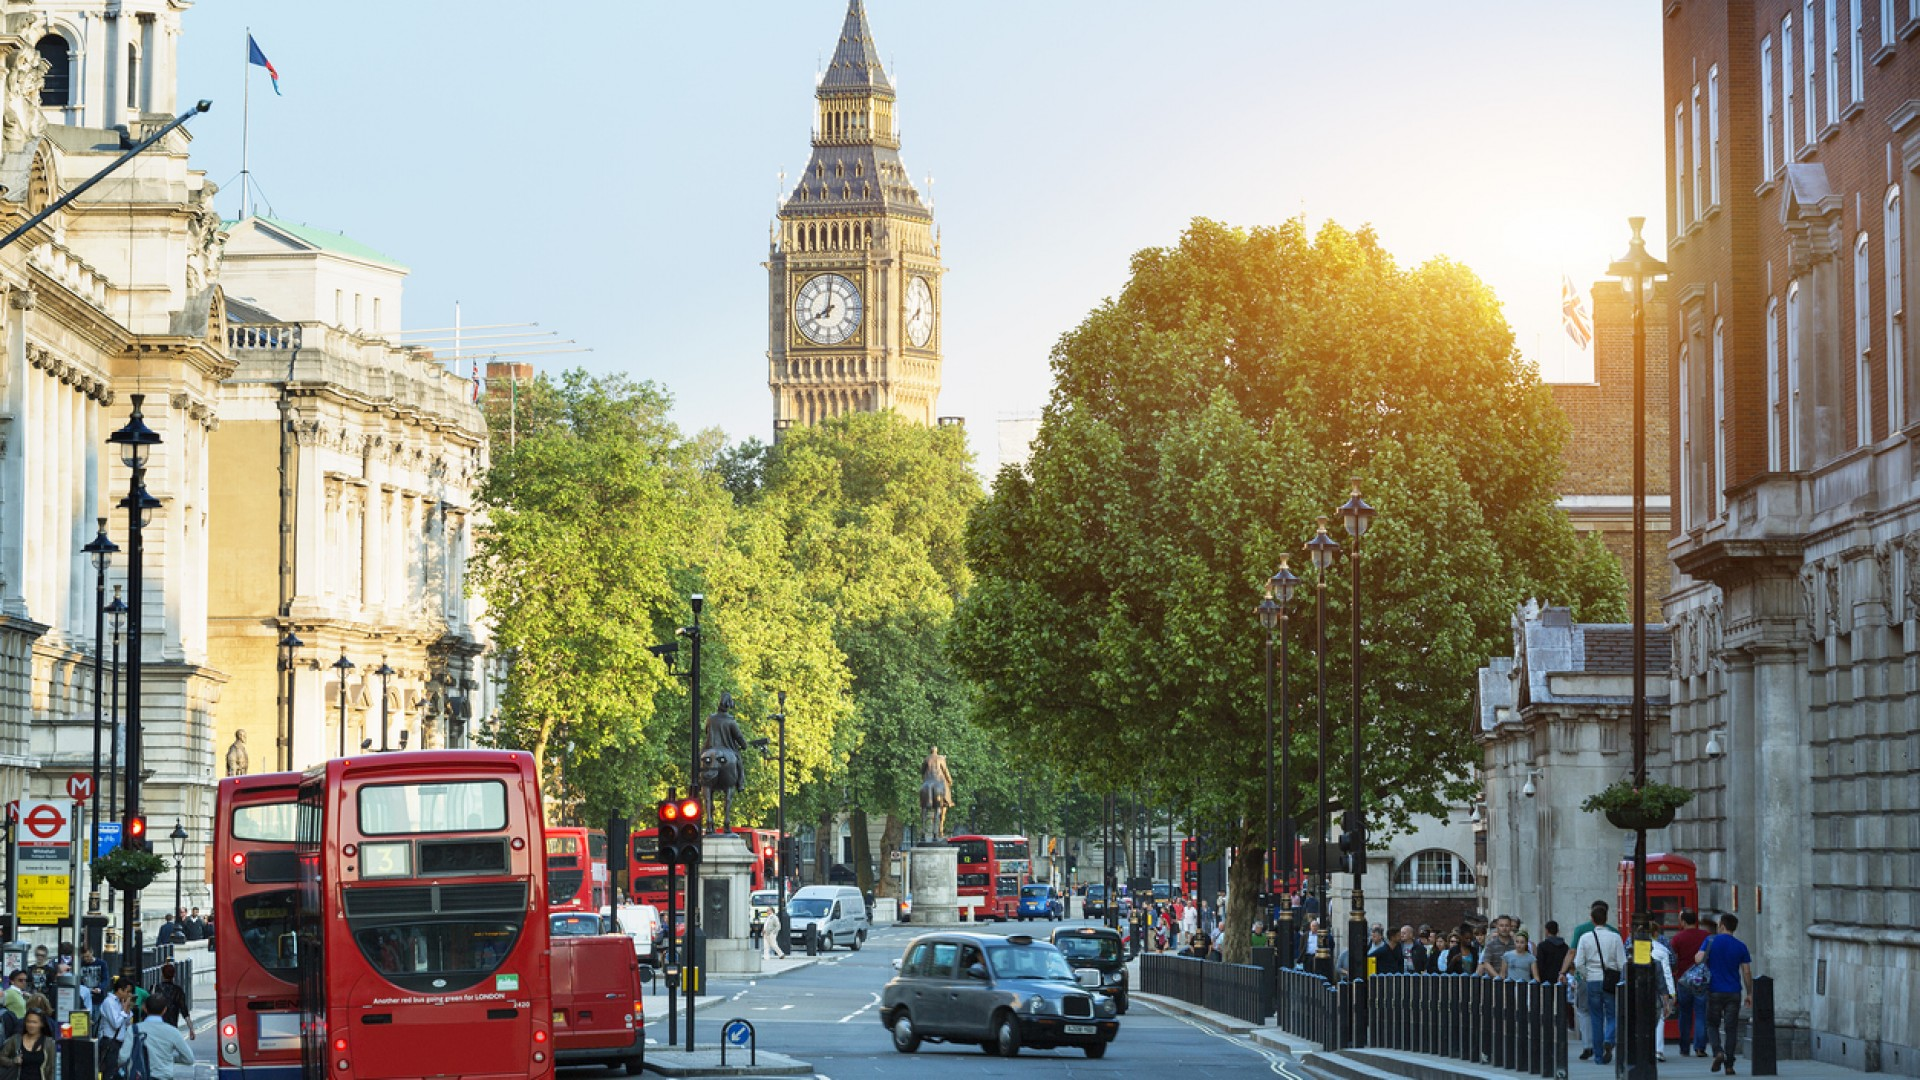 London Theatre Classics: Hotel & Ticket packages